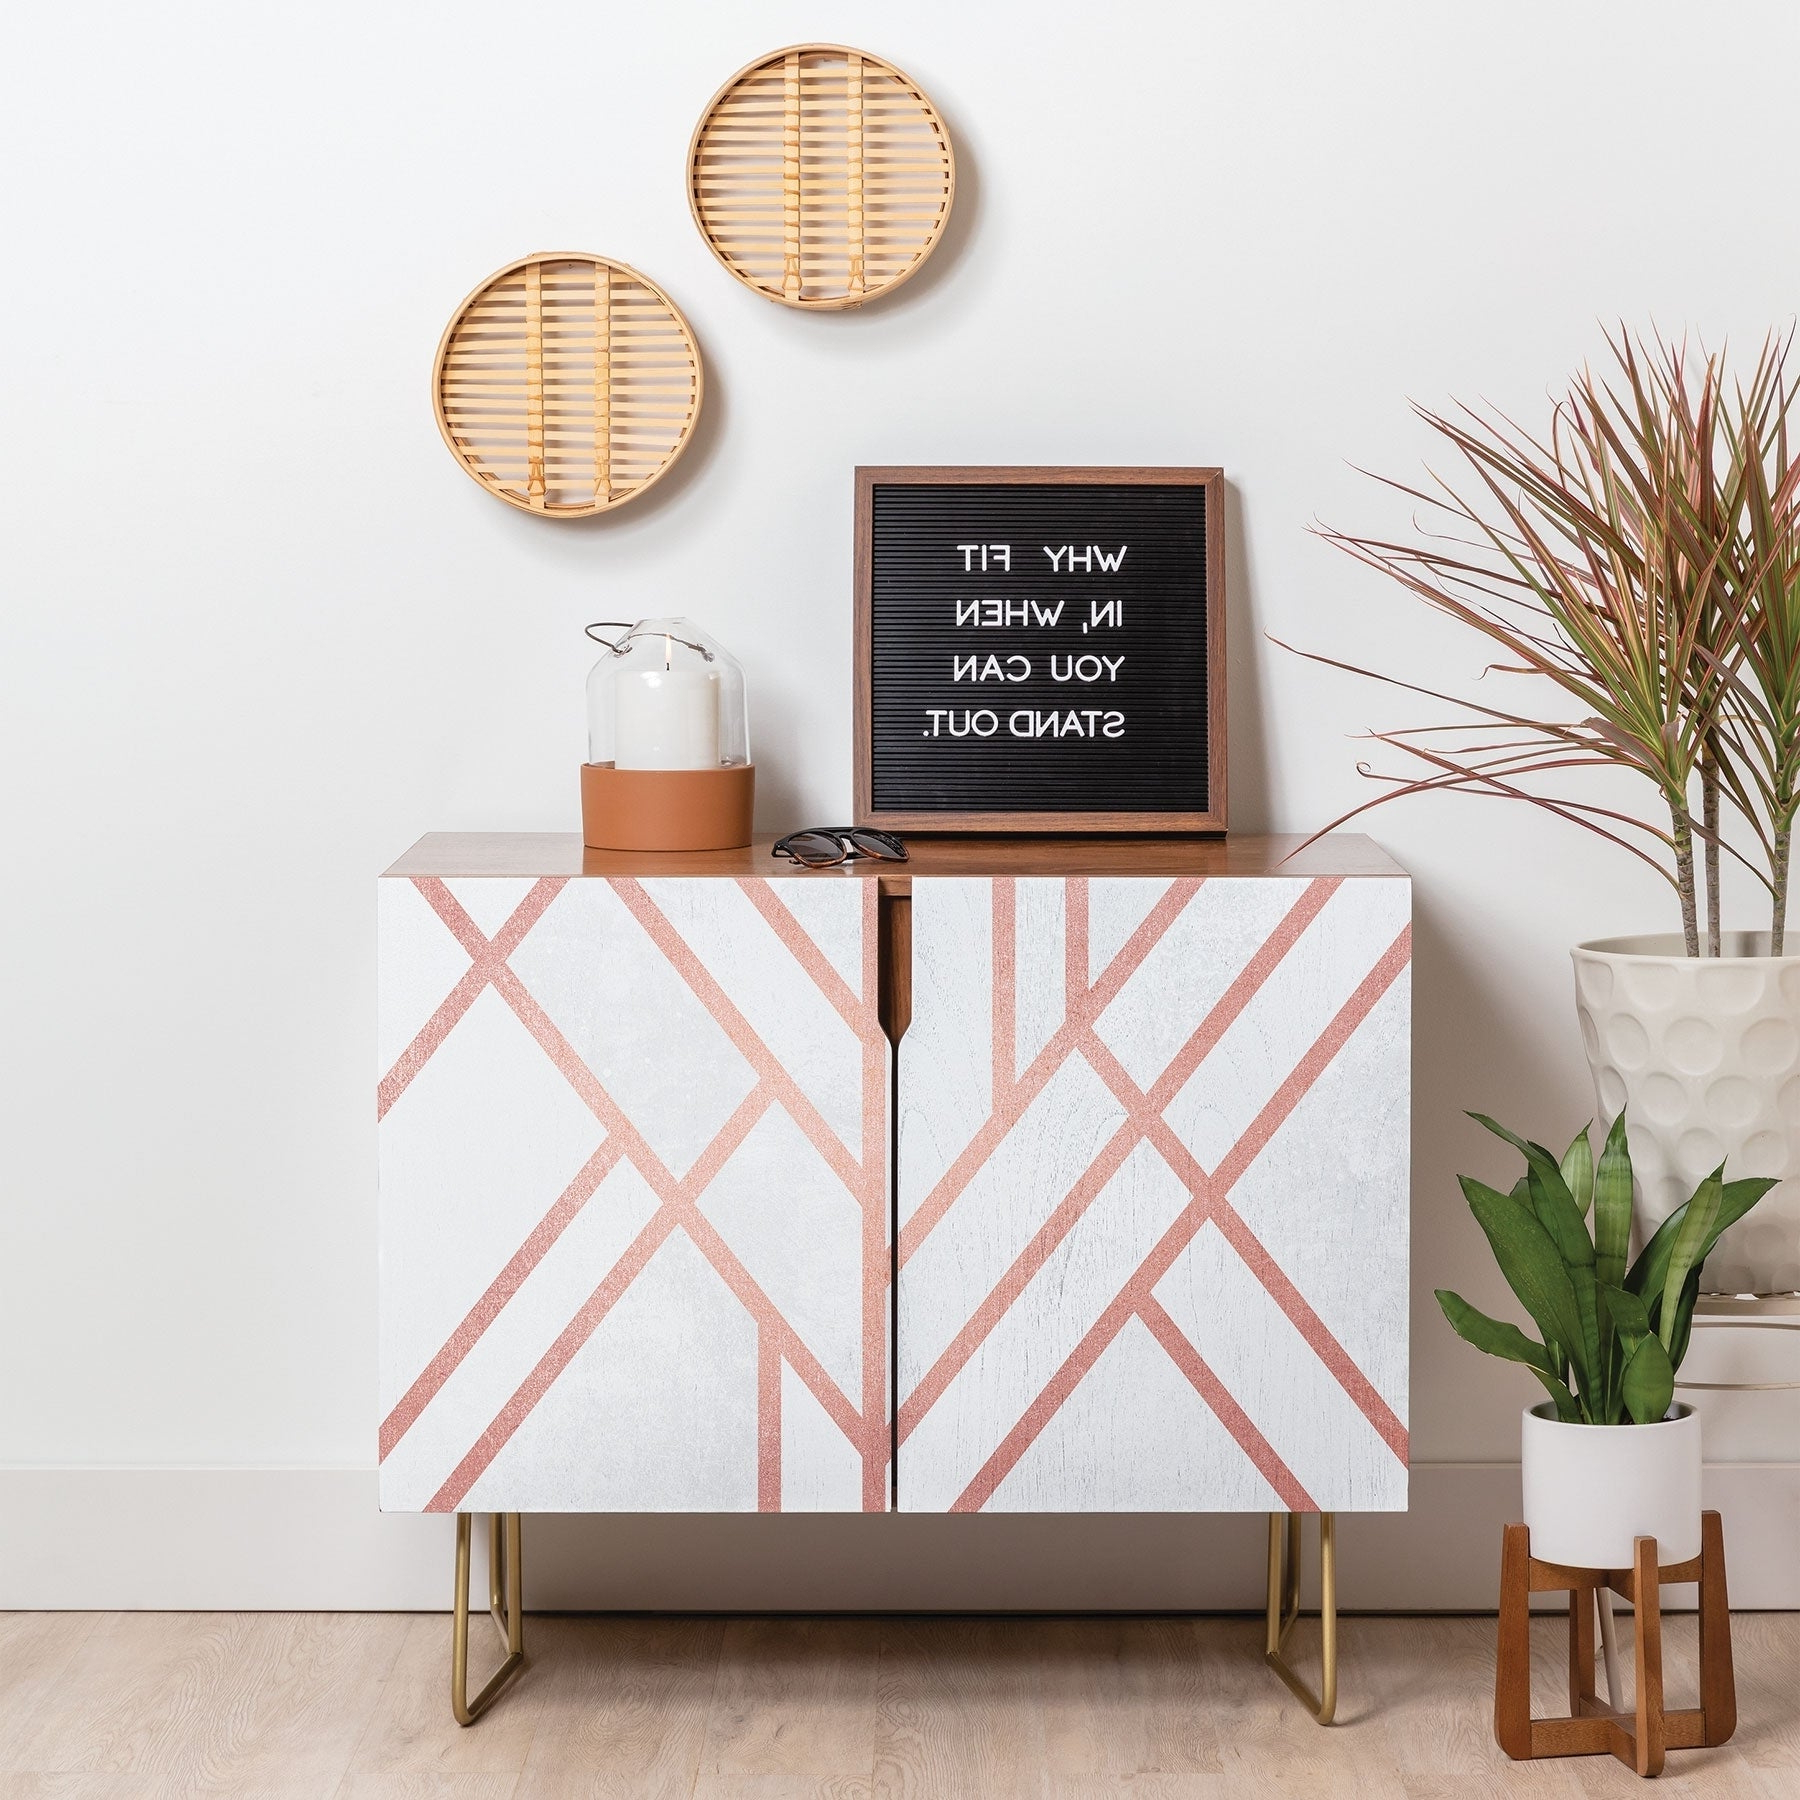 Deny Designs Pink And White Geometric Credenza (Birch Or Walnut, 3 Leg  Options) Inside Line Geo Credenzas (View 6 of 20)